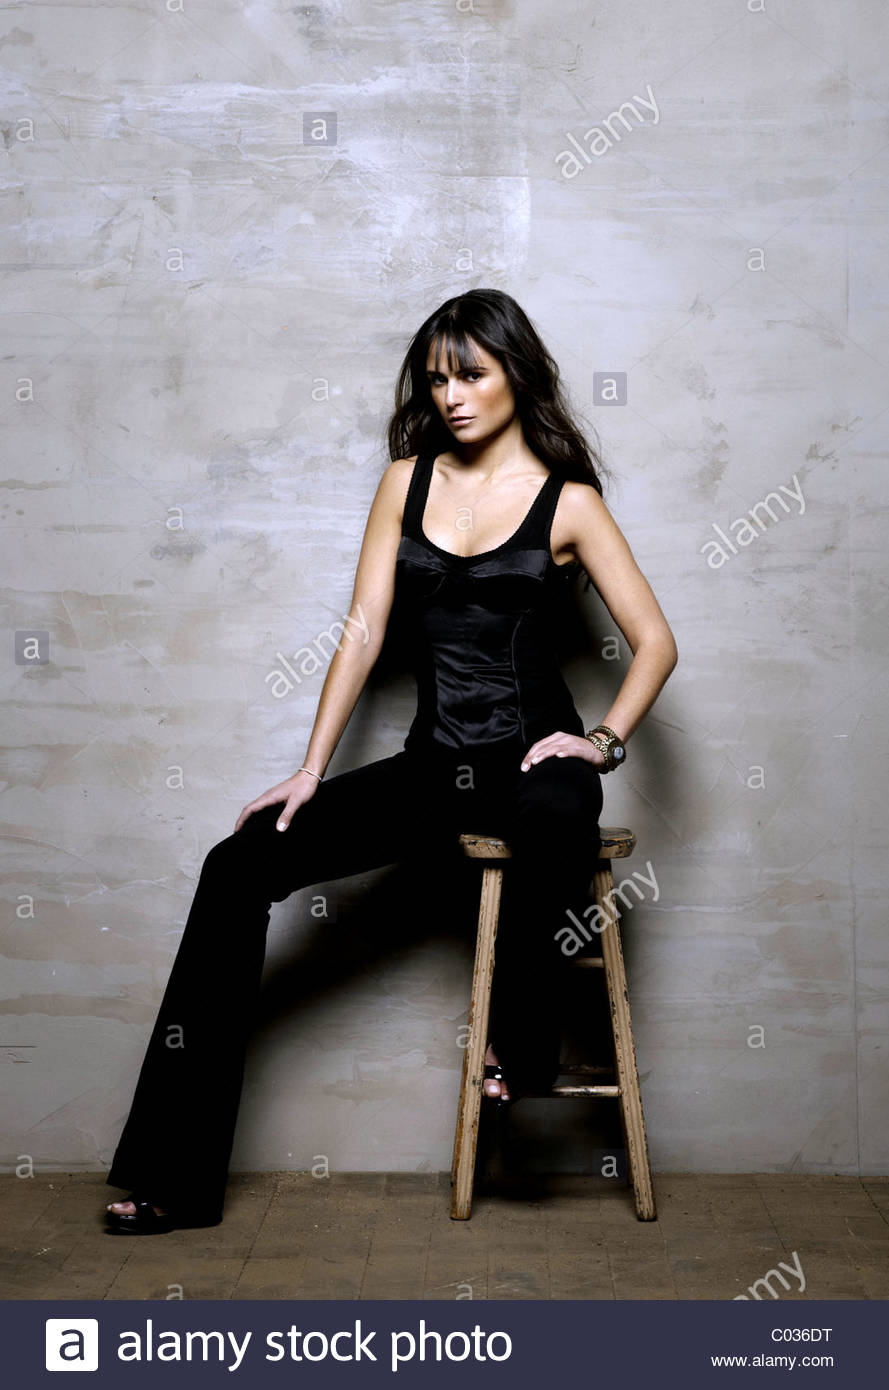 JORDANA BREWSTER FAST & FURIOUS; THE FAST AND THE FURIOUS 4 (2009) - Stock Image